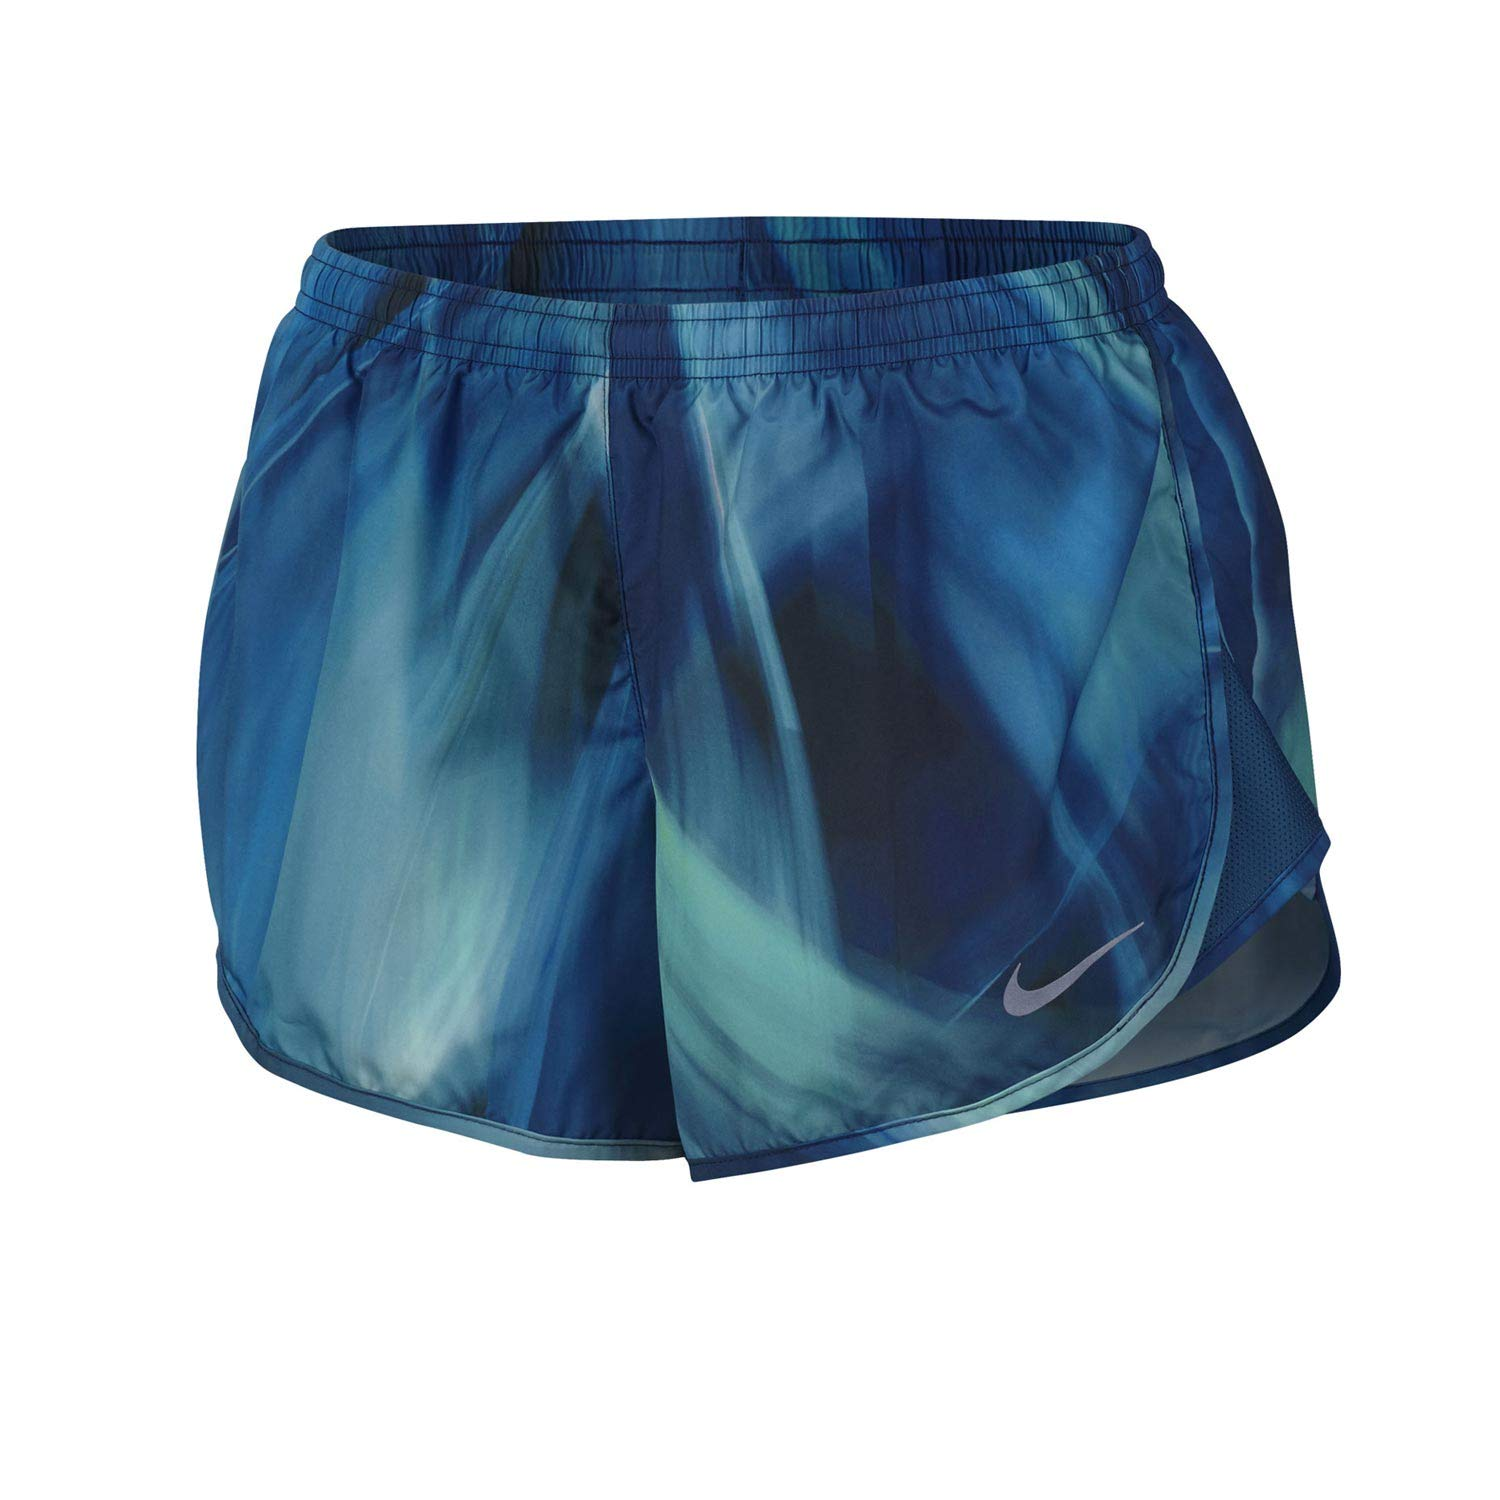 NIKE Tempo Women's Dri-Fit Running Shorts (X Large) by Nike (Image #1)